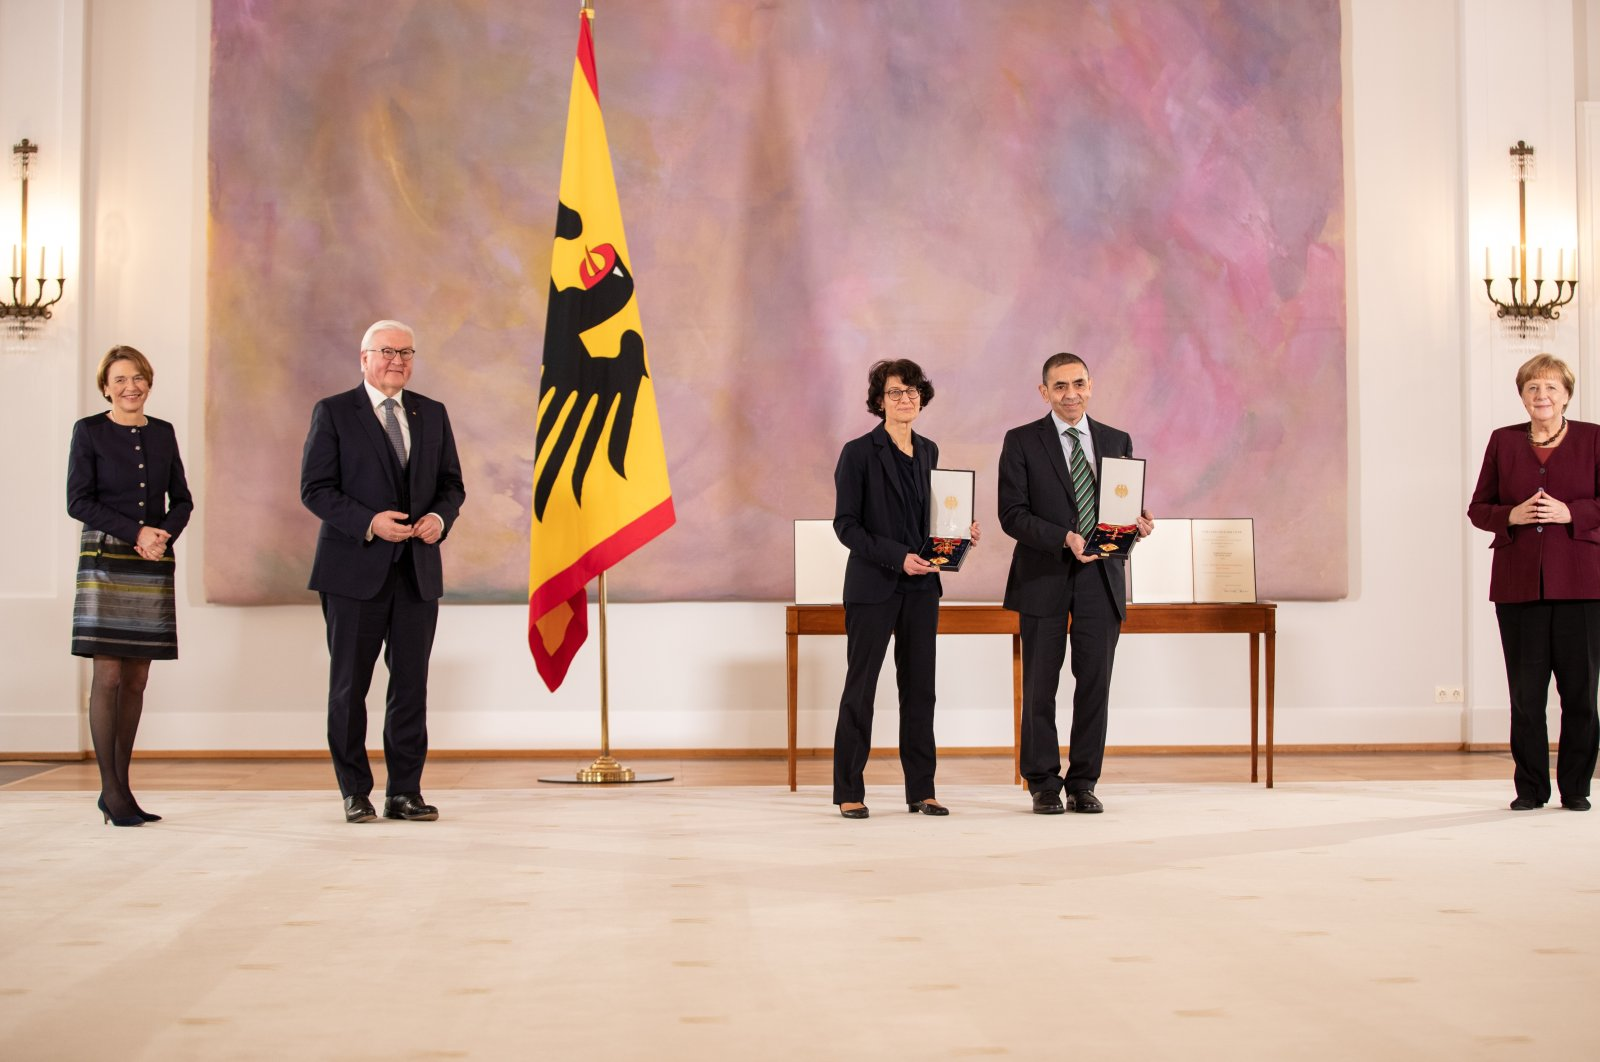 Özlem Türeci (3rd L) and her husband Uğur Şahin (2nd R) pose with their medals next to President Frank-Walter Steinmeier (2nd L) and Chancellor Angela Merkel (R), in Berlin, Germany, March 19, 2021. (AP Photo)